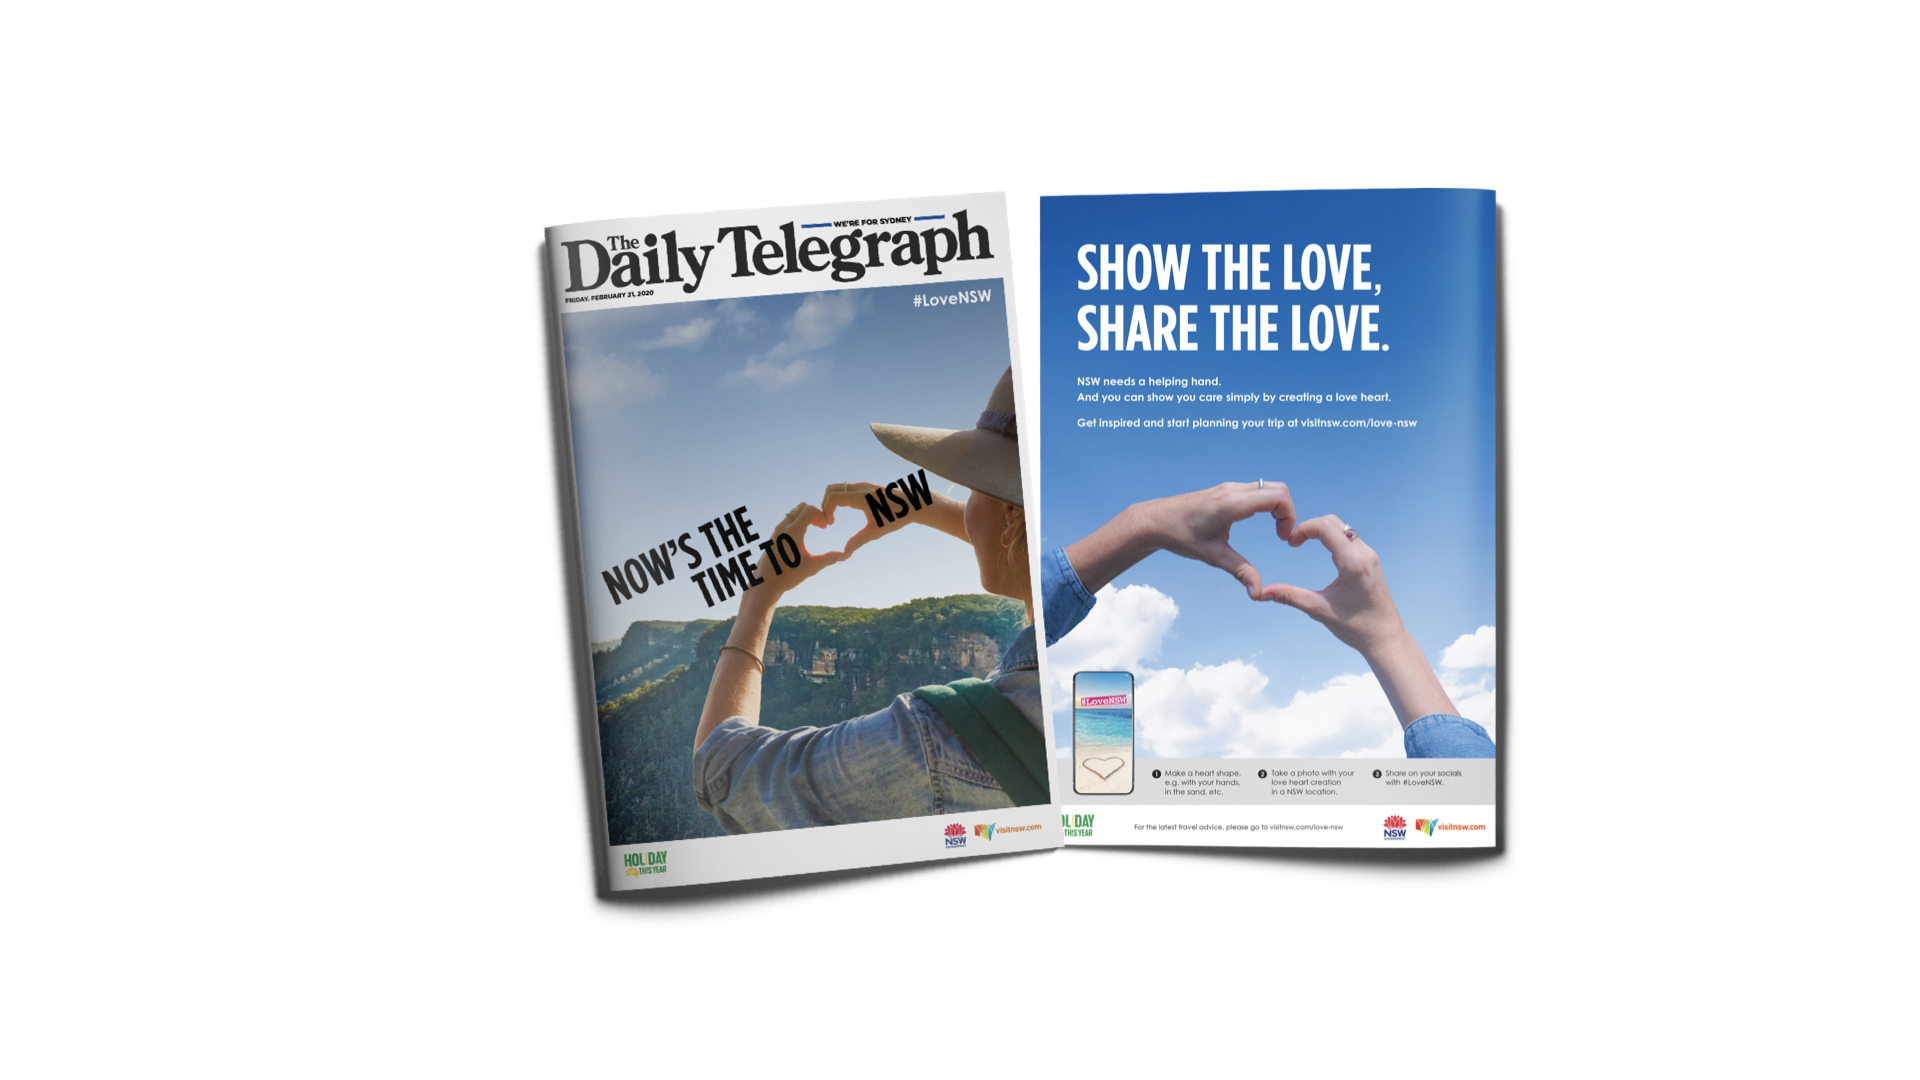 Visit NSW spread in The Daily Telegraph